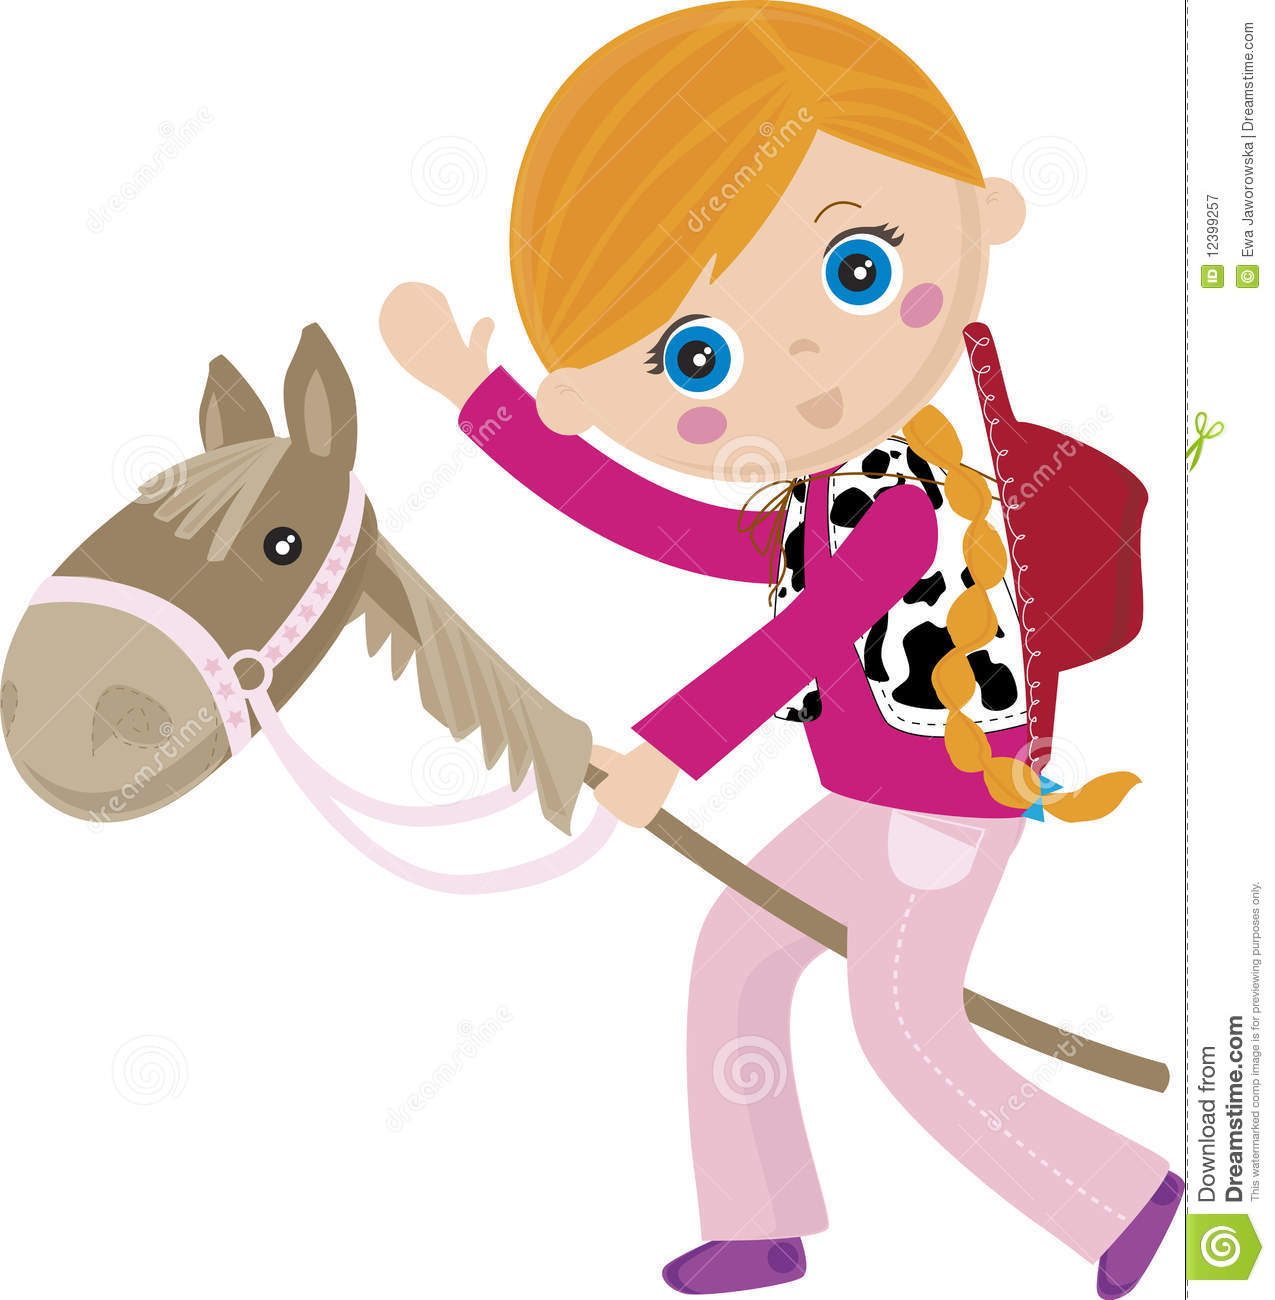 ... Stick, Puppet Horse Royalty Free Stock Photography - Image: 12399257